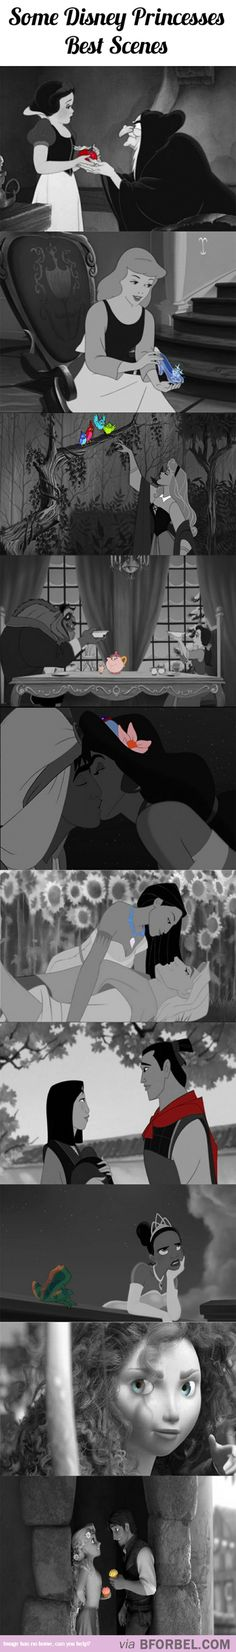 10 Best Scenes Of Disney Princesses With A Touch Of Color…